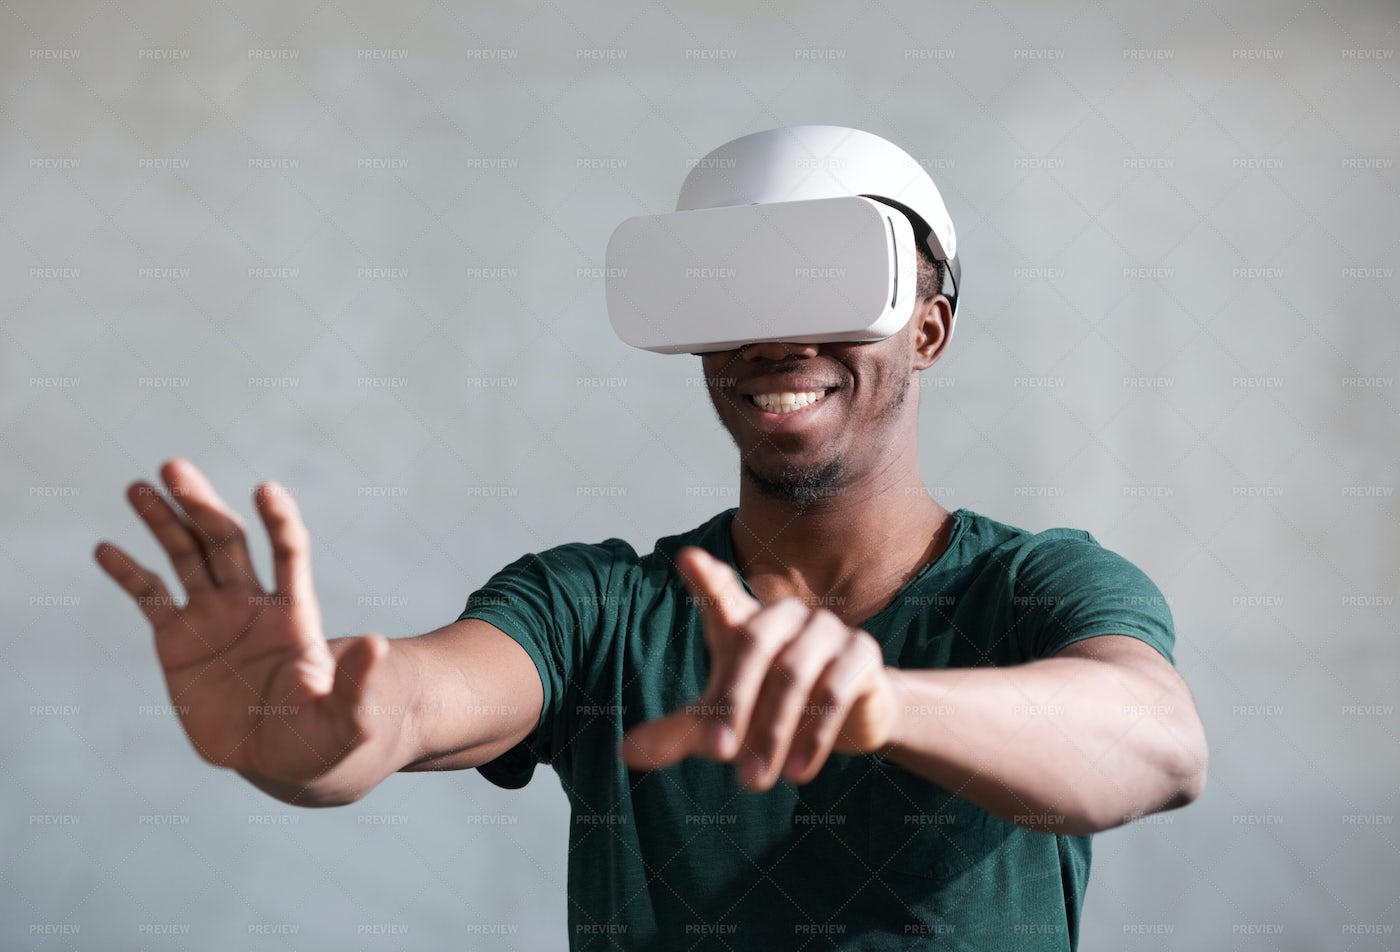 Portrait Of Young Man In Vr Headset: Stock Photos